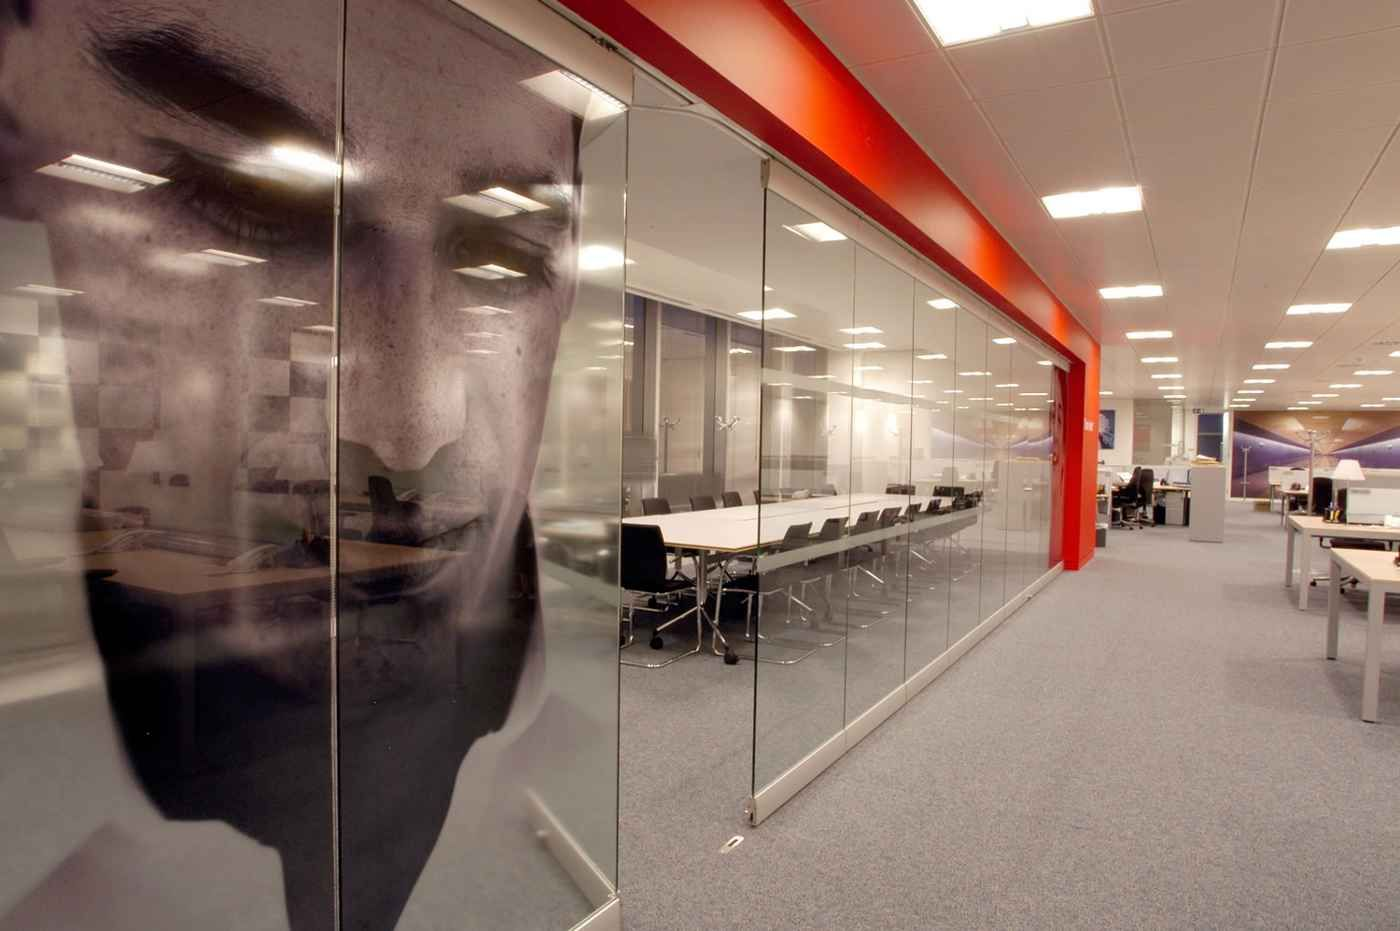 Fixed Glass Partitions Panel for Meeting Room | Work: HG - Glass ...